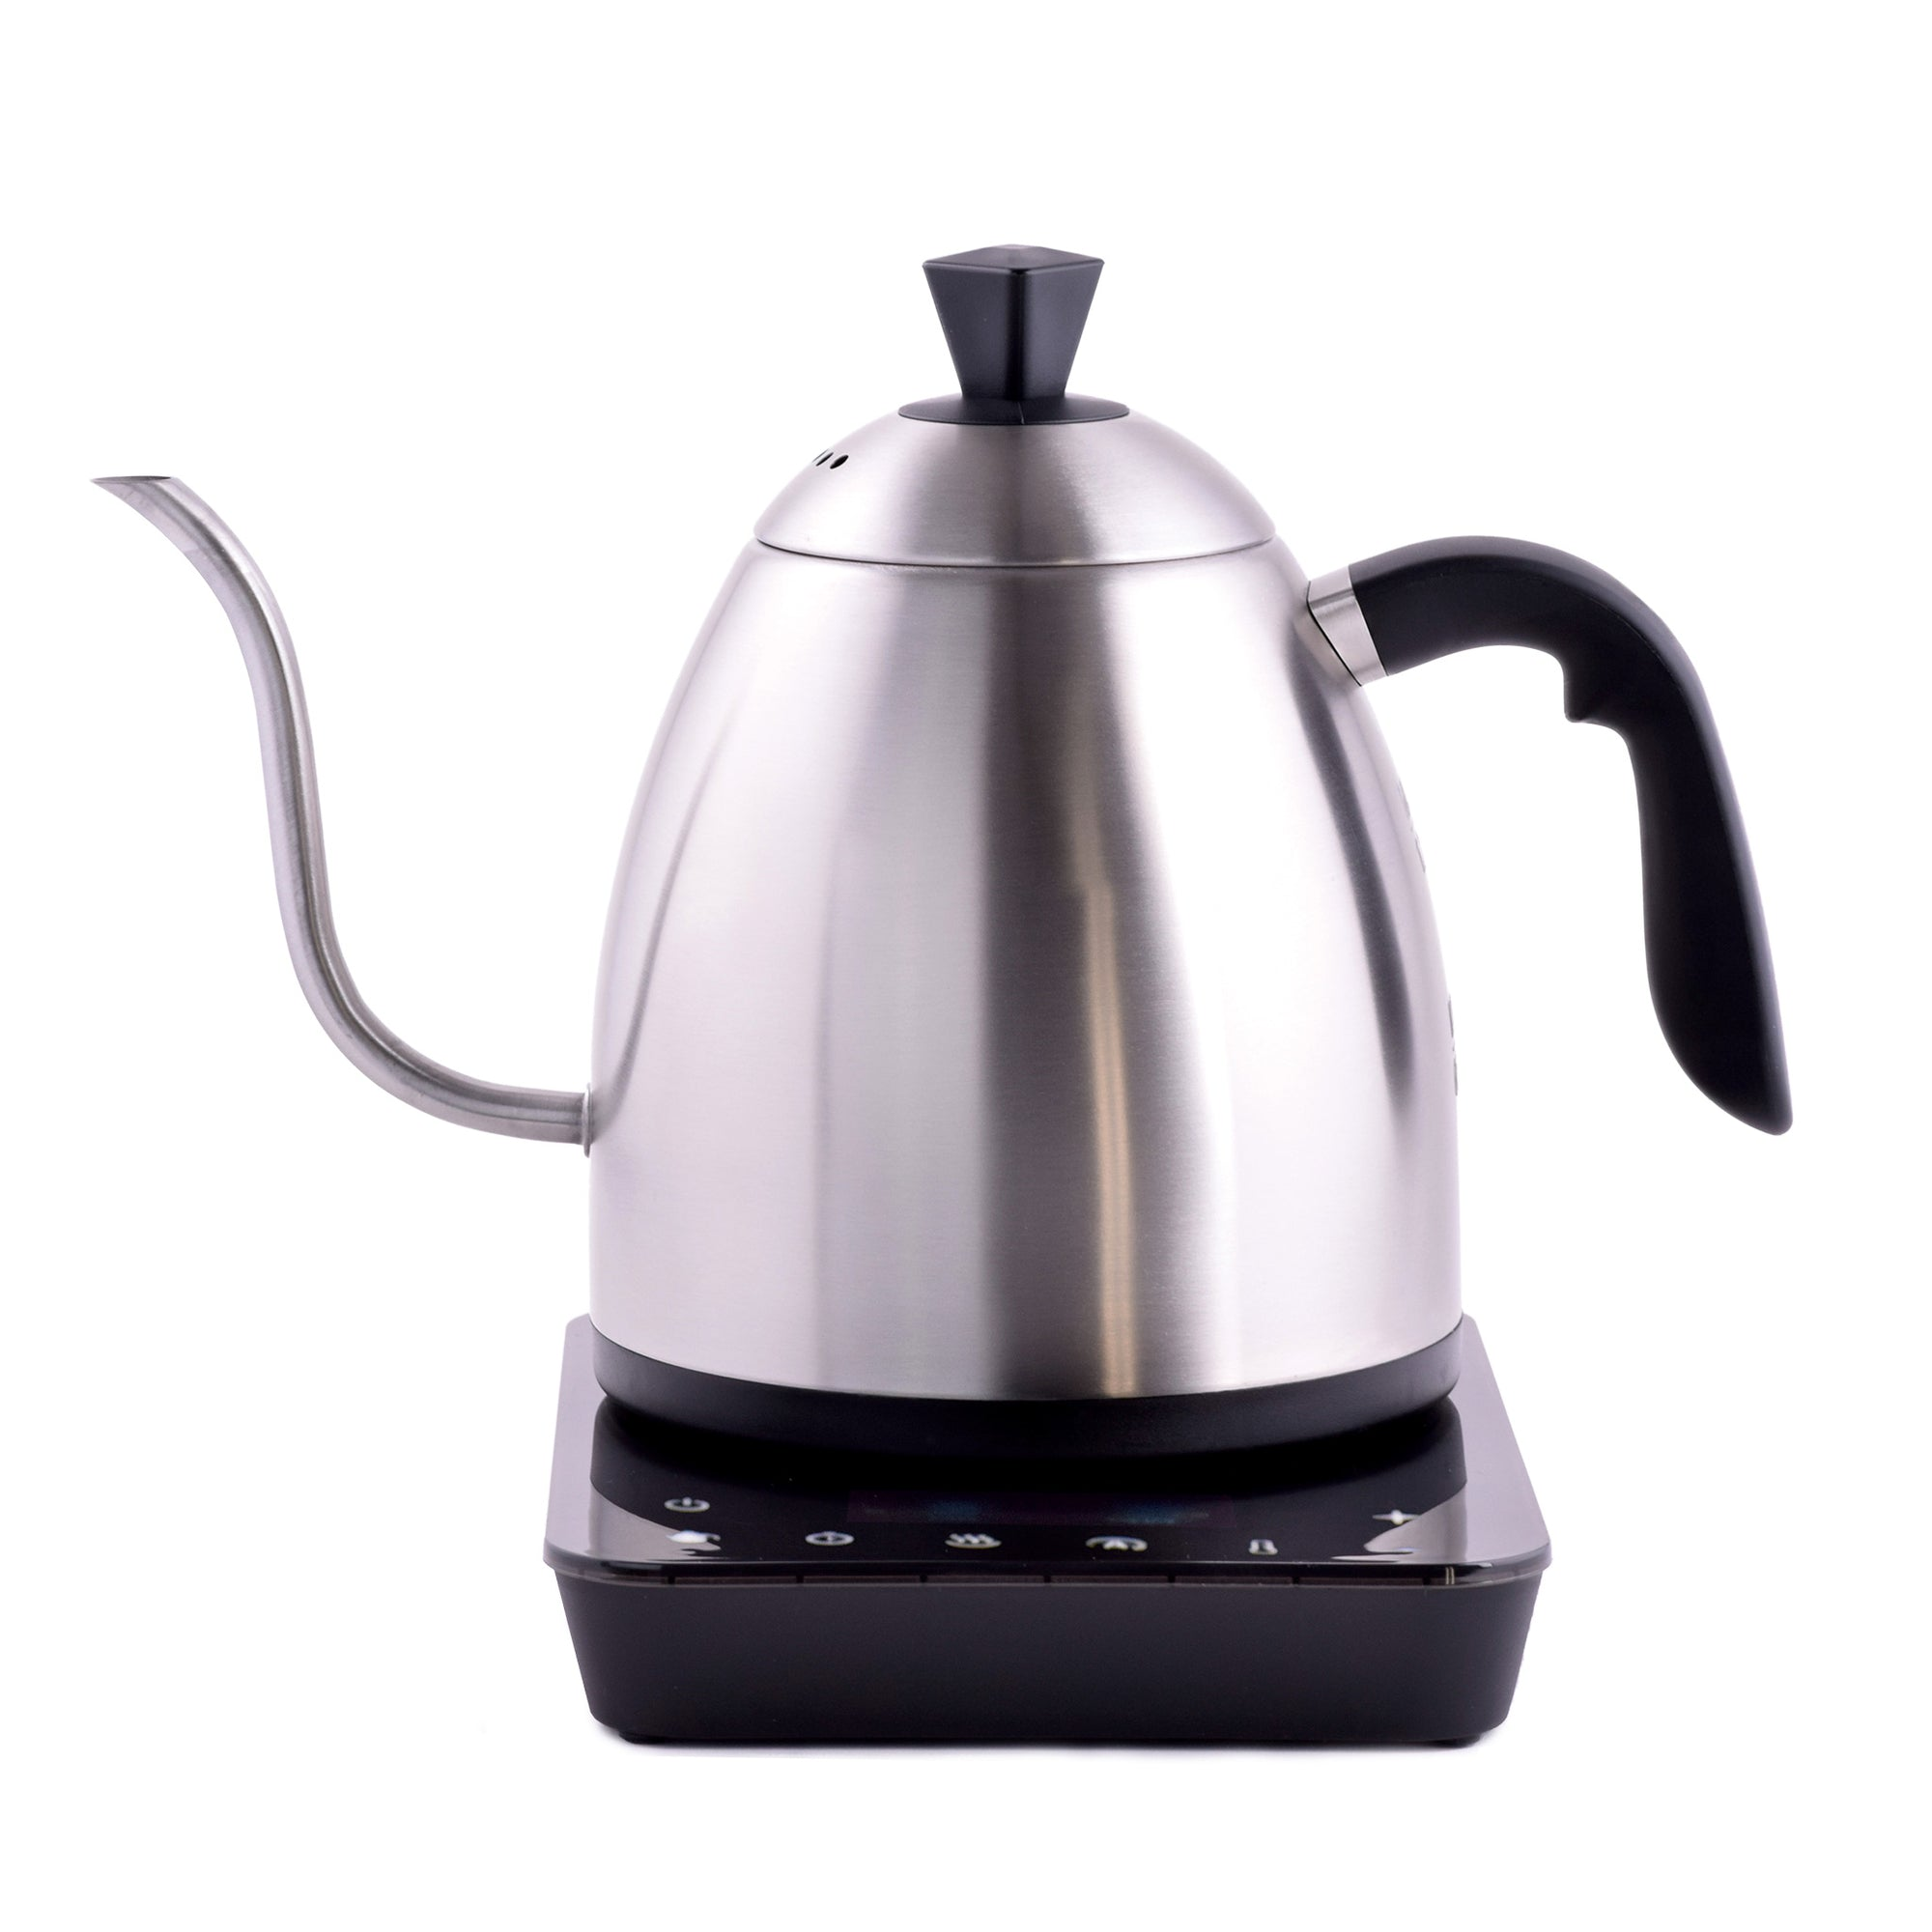 Brewista Smart Kettle 1.2L - Espresso Gear